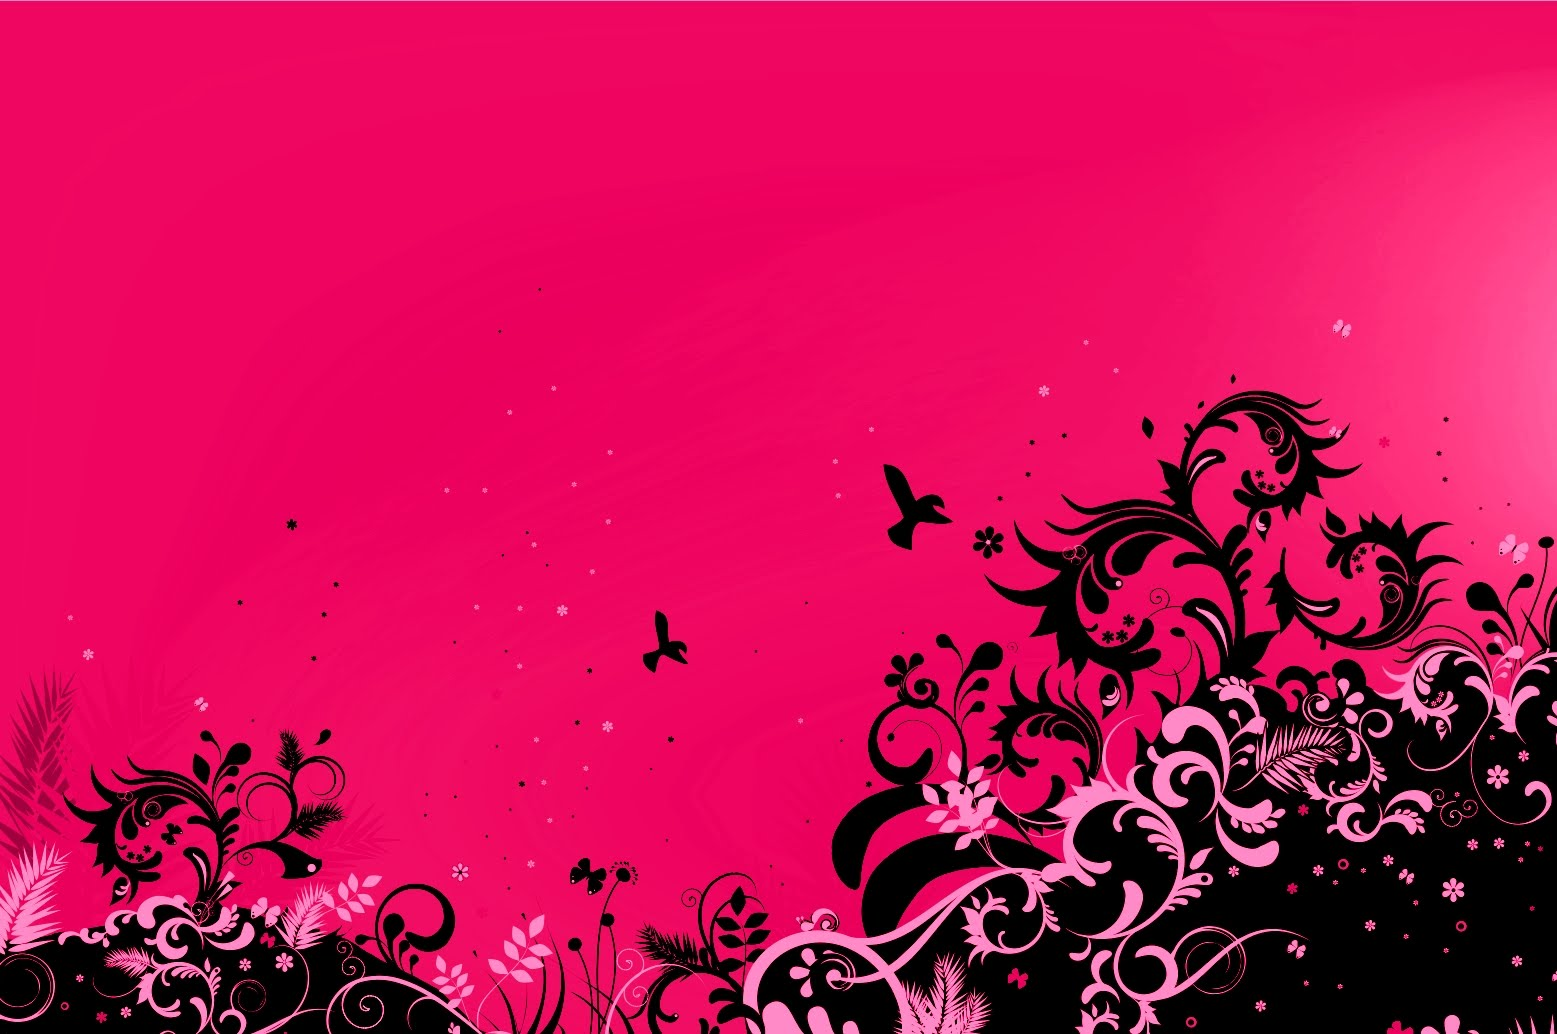 50 Pink Wallpaper For My Desktop On Wallpapersafari